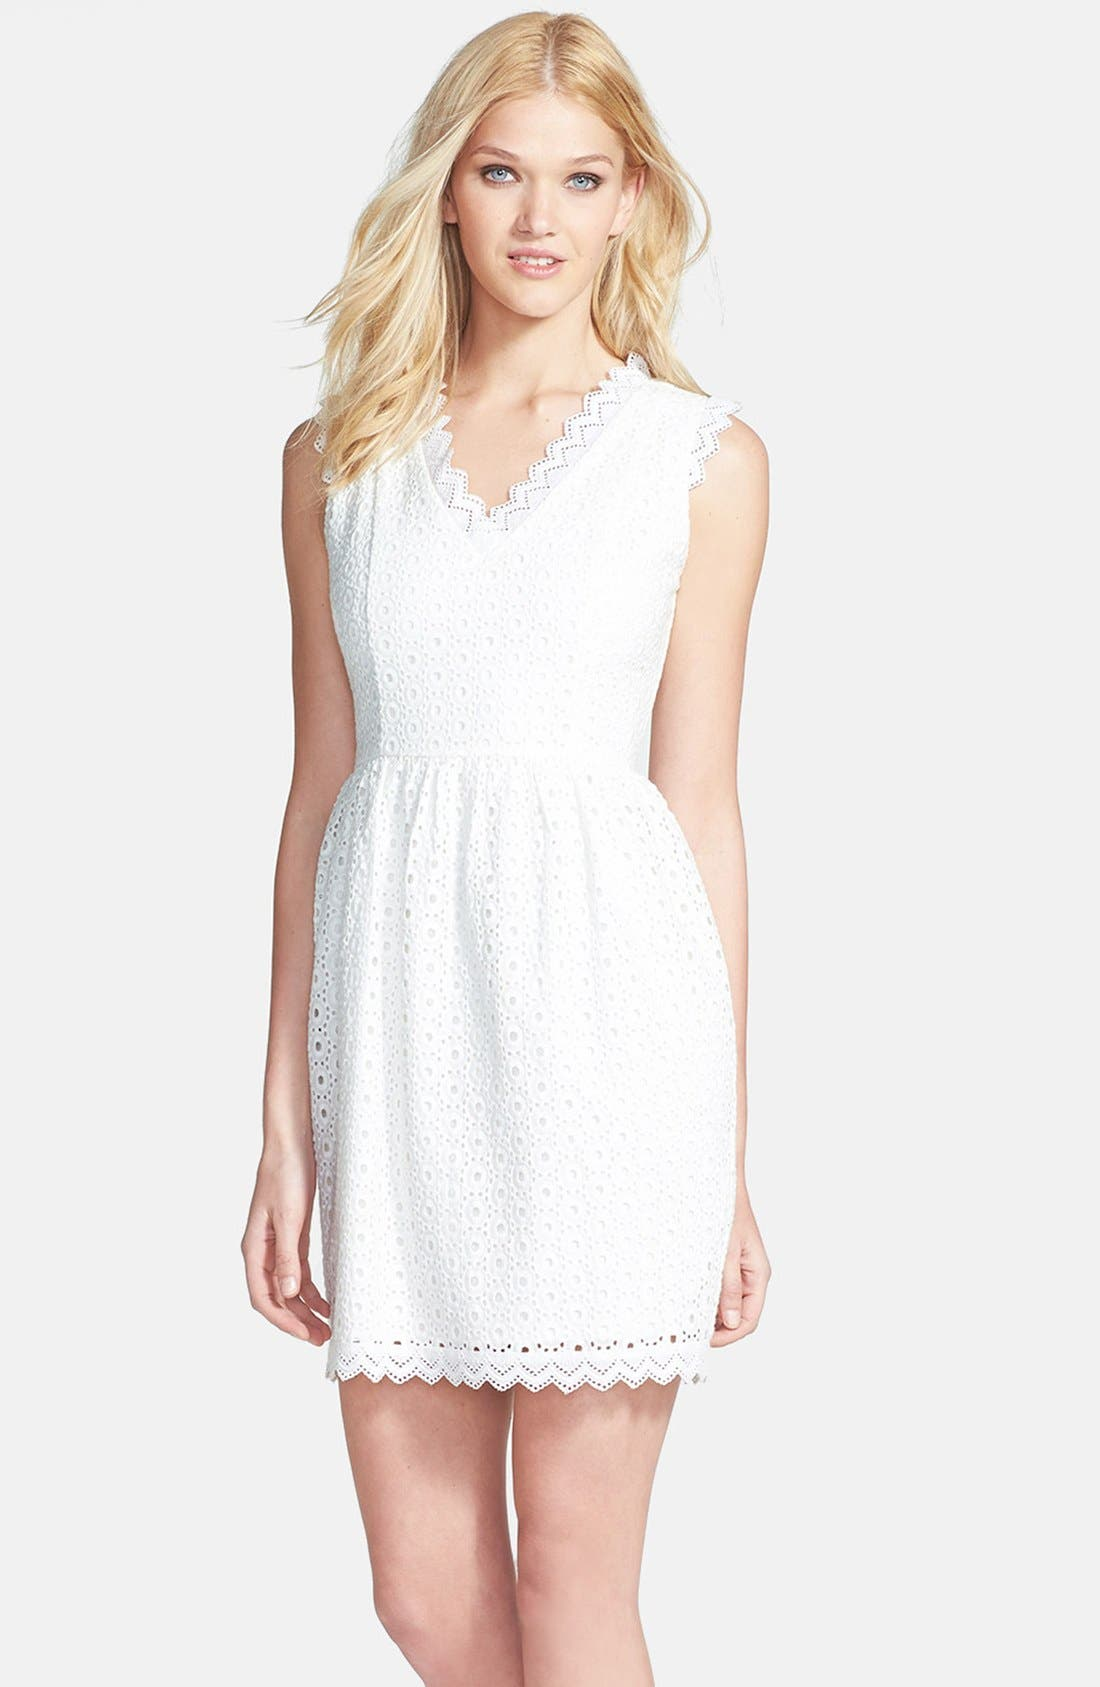 Alternate Image 1 Selected - MM Couture Eyelet Cotton Fit & Flare Dress